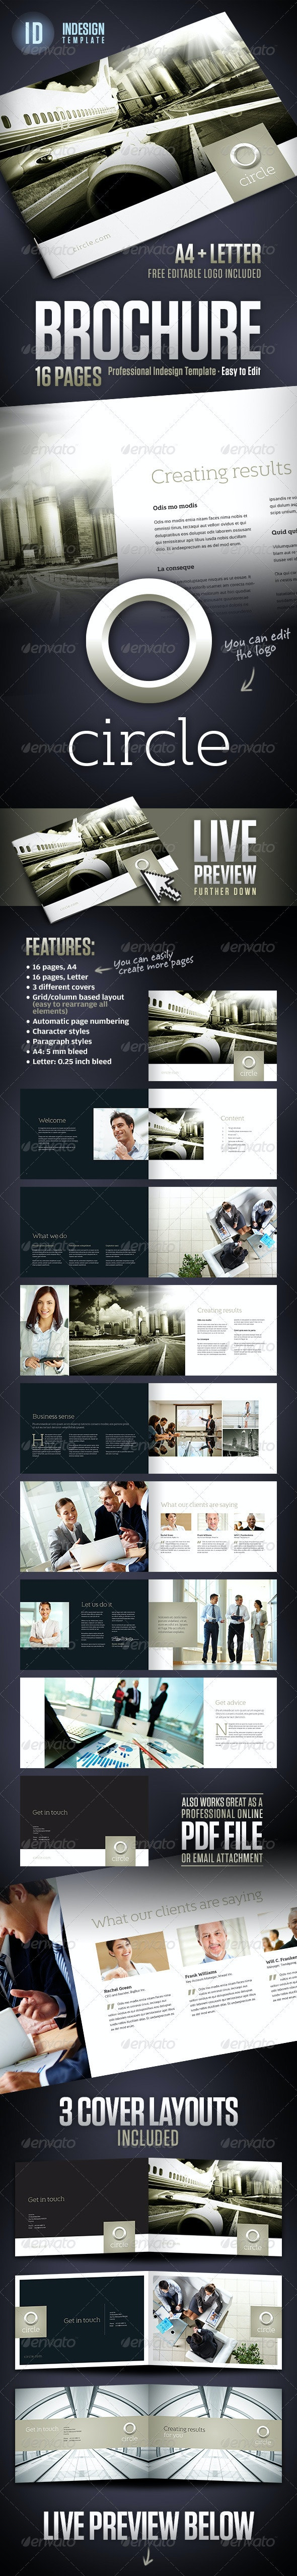 Circle - Corporate Business Brochure A4 + Letter - Corporate Brochures